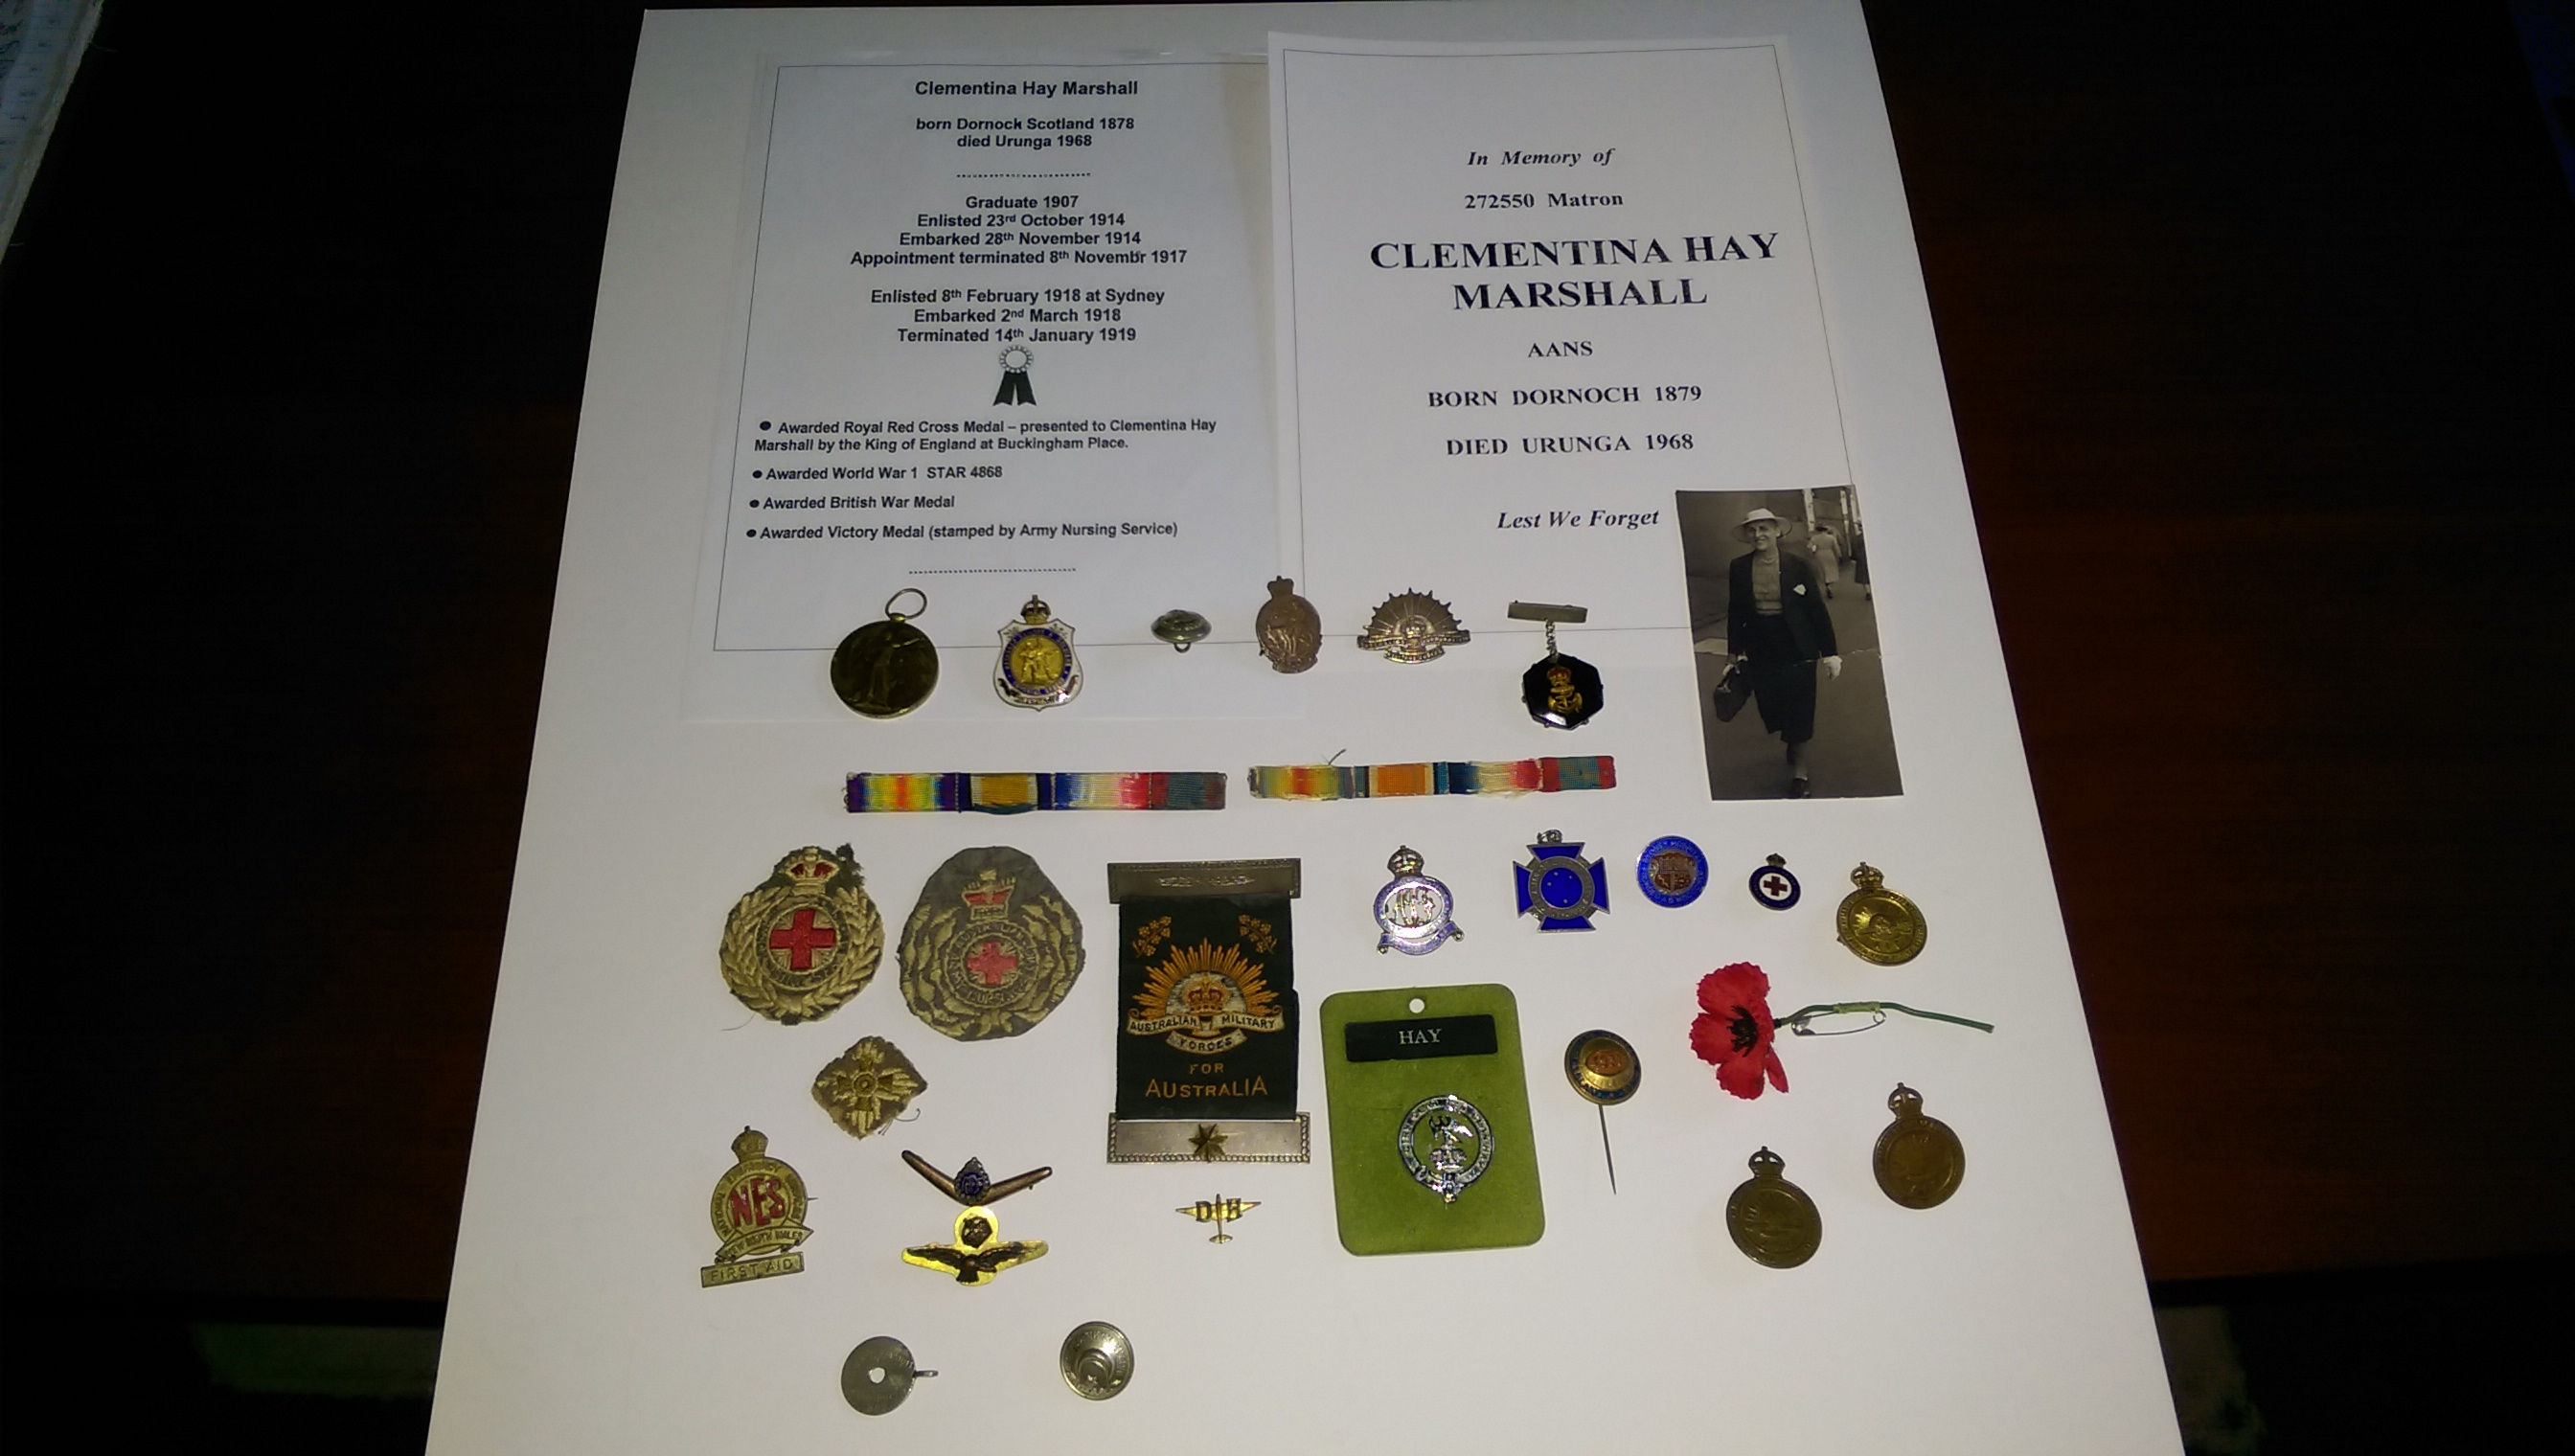 clementina hay marshall personal badges & medals